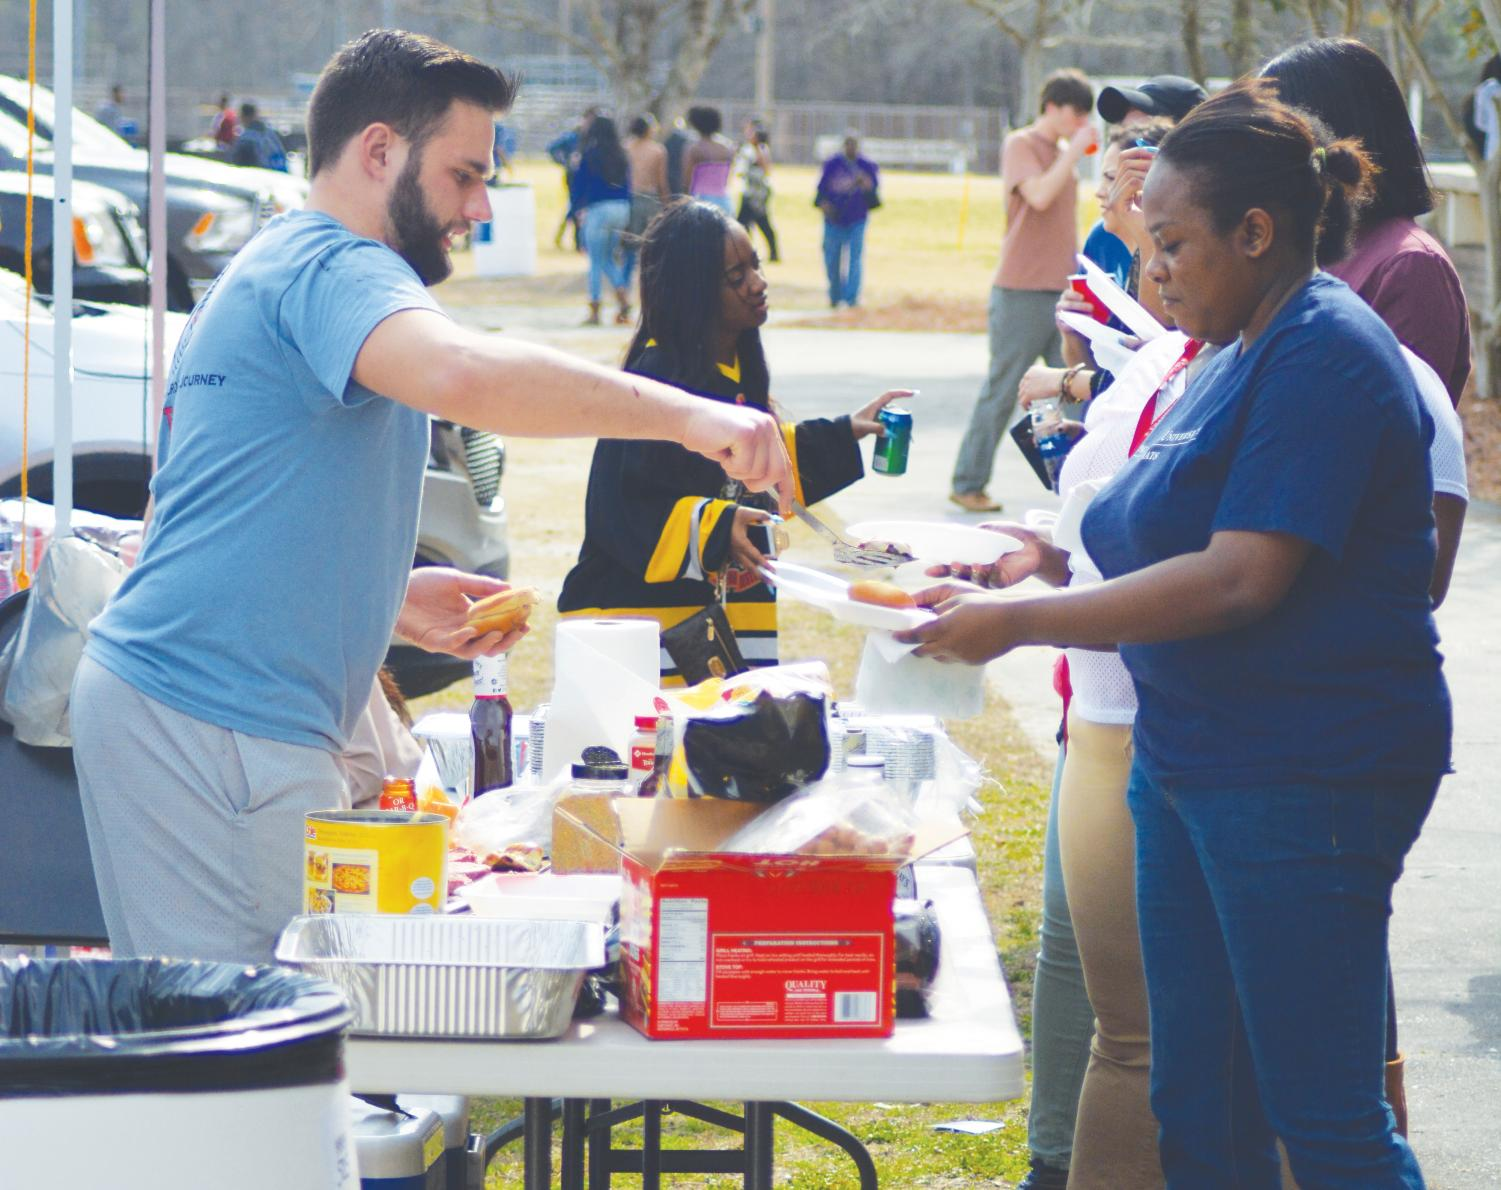 FMU faculty, students and alumni assemble tents and make food during the Homecoming tailgate. Tailgating took place from 11 a.m. throughout the basketball games.